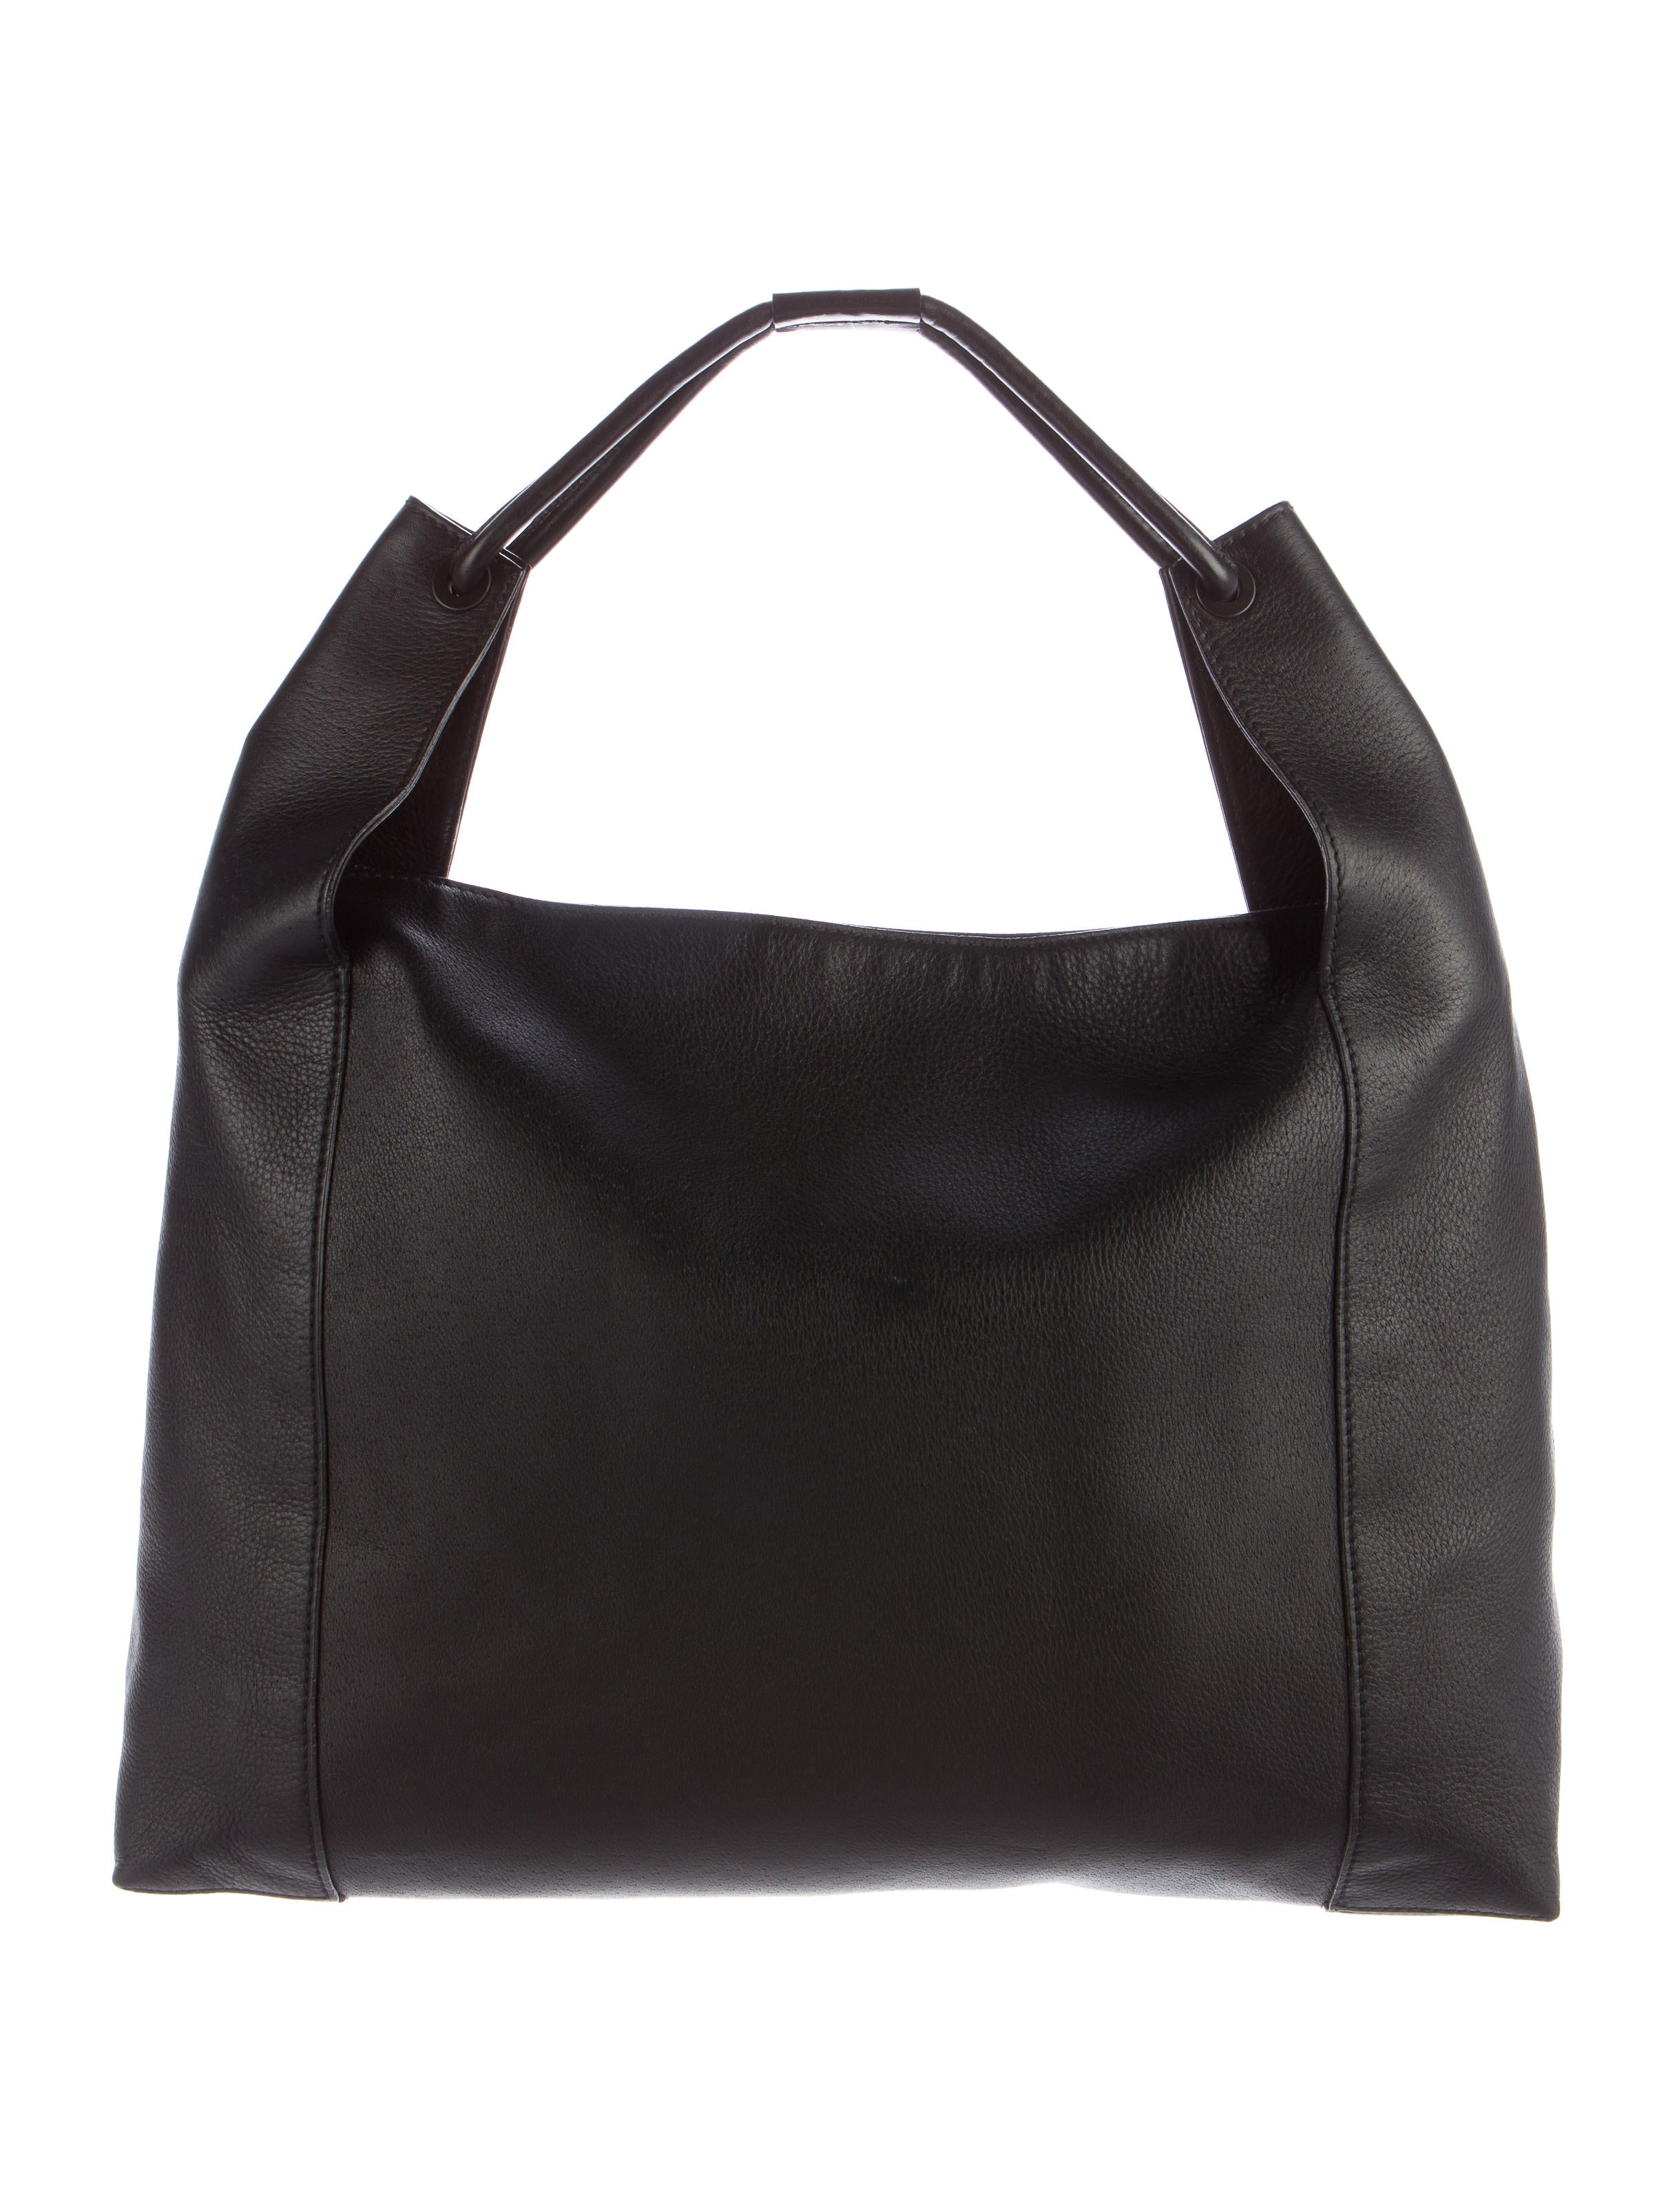 Shop X-Large Hobos at eBags - experts in bags and accessories since We offer easy returns, expert advice, and millions of customer reviews. At eBags, Free Shipping, Percent Savings, Dollar Savings and Reward offers are all considered to be promotional offers. Faux Leather Hobo Bag. $ $ 20% Off This Item! Use Code: TRAVEL.